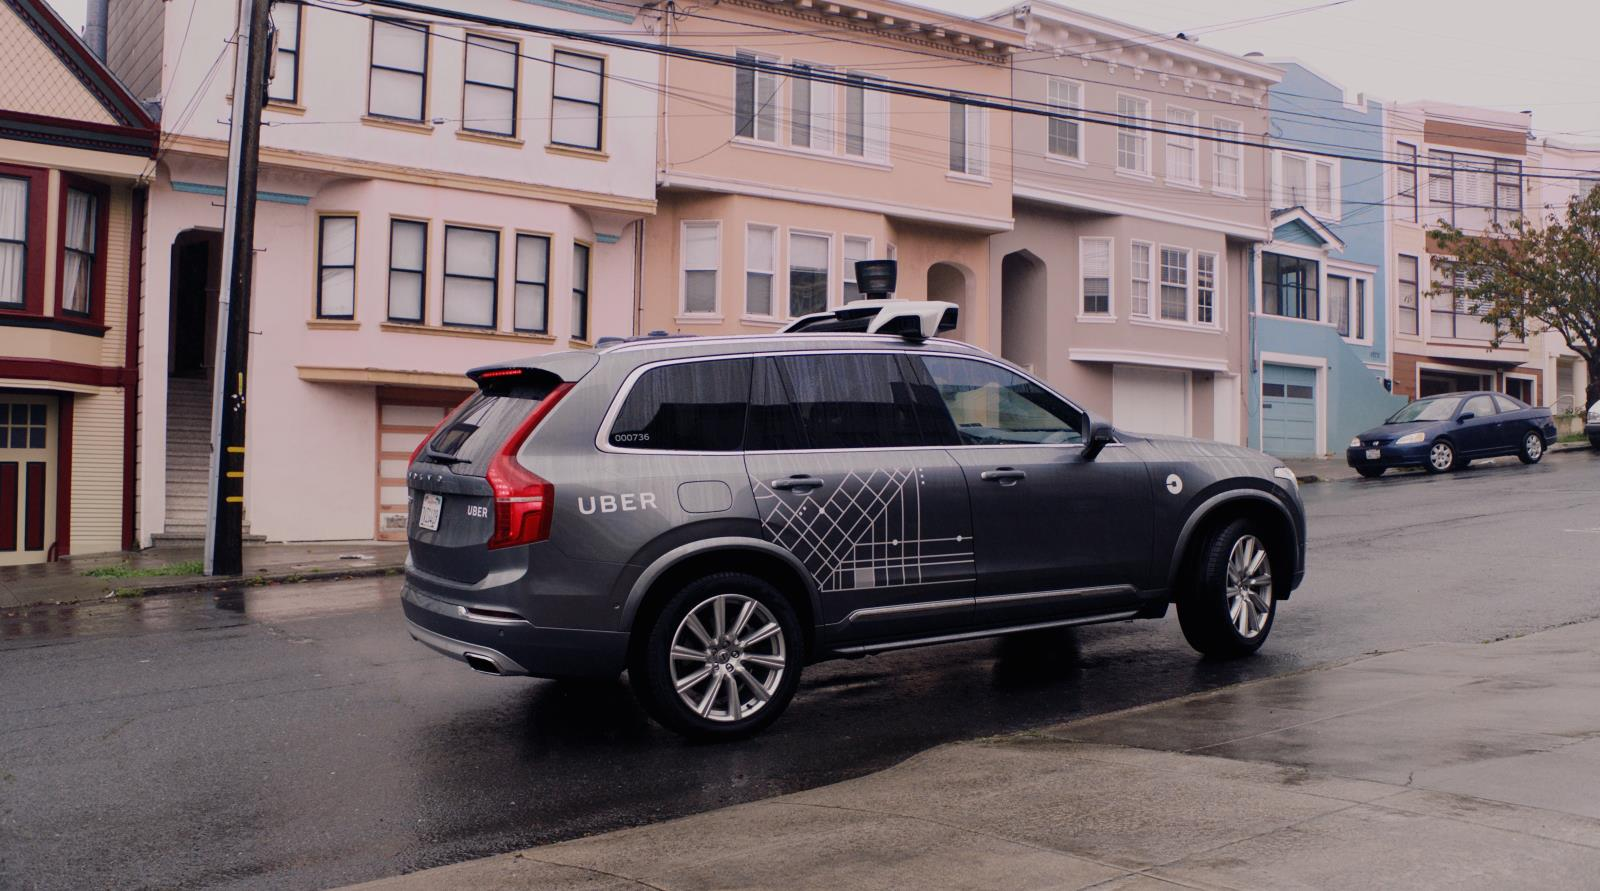 Uber autonomous Volvo in San Francisco